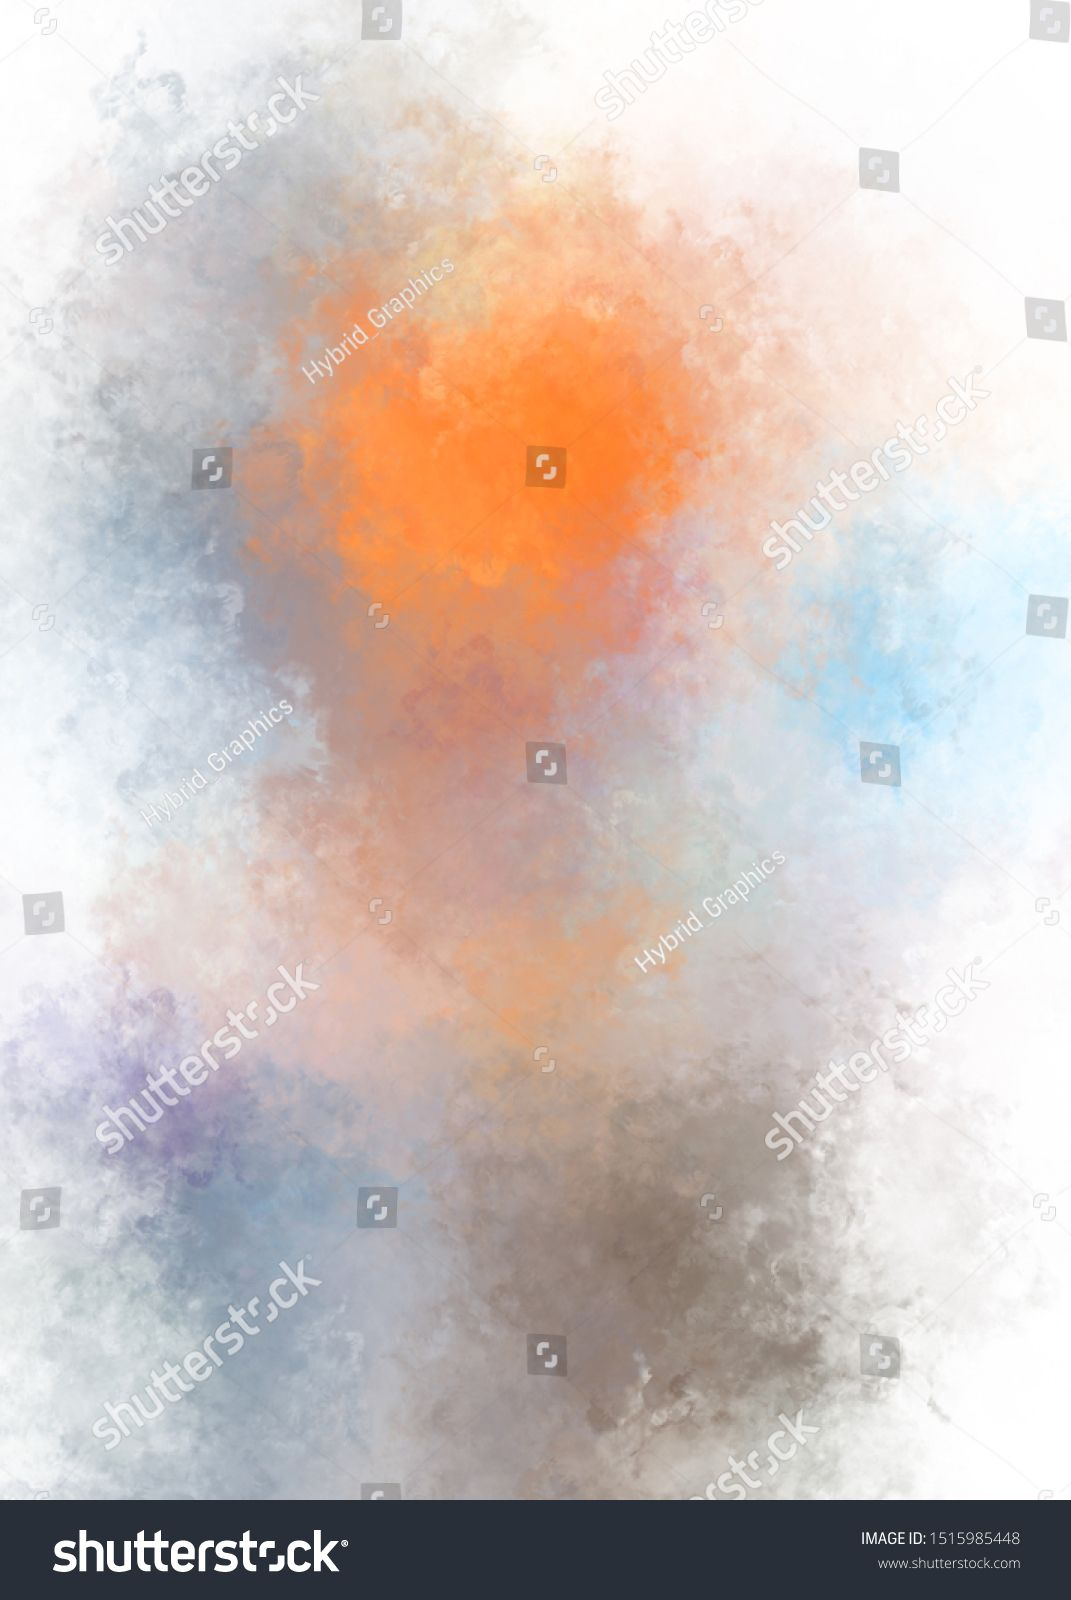 Digital Illustration with strokes of paint Abstract background with colorful brushed pattern Brush stroked painted wallpaper 2d texture painting